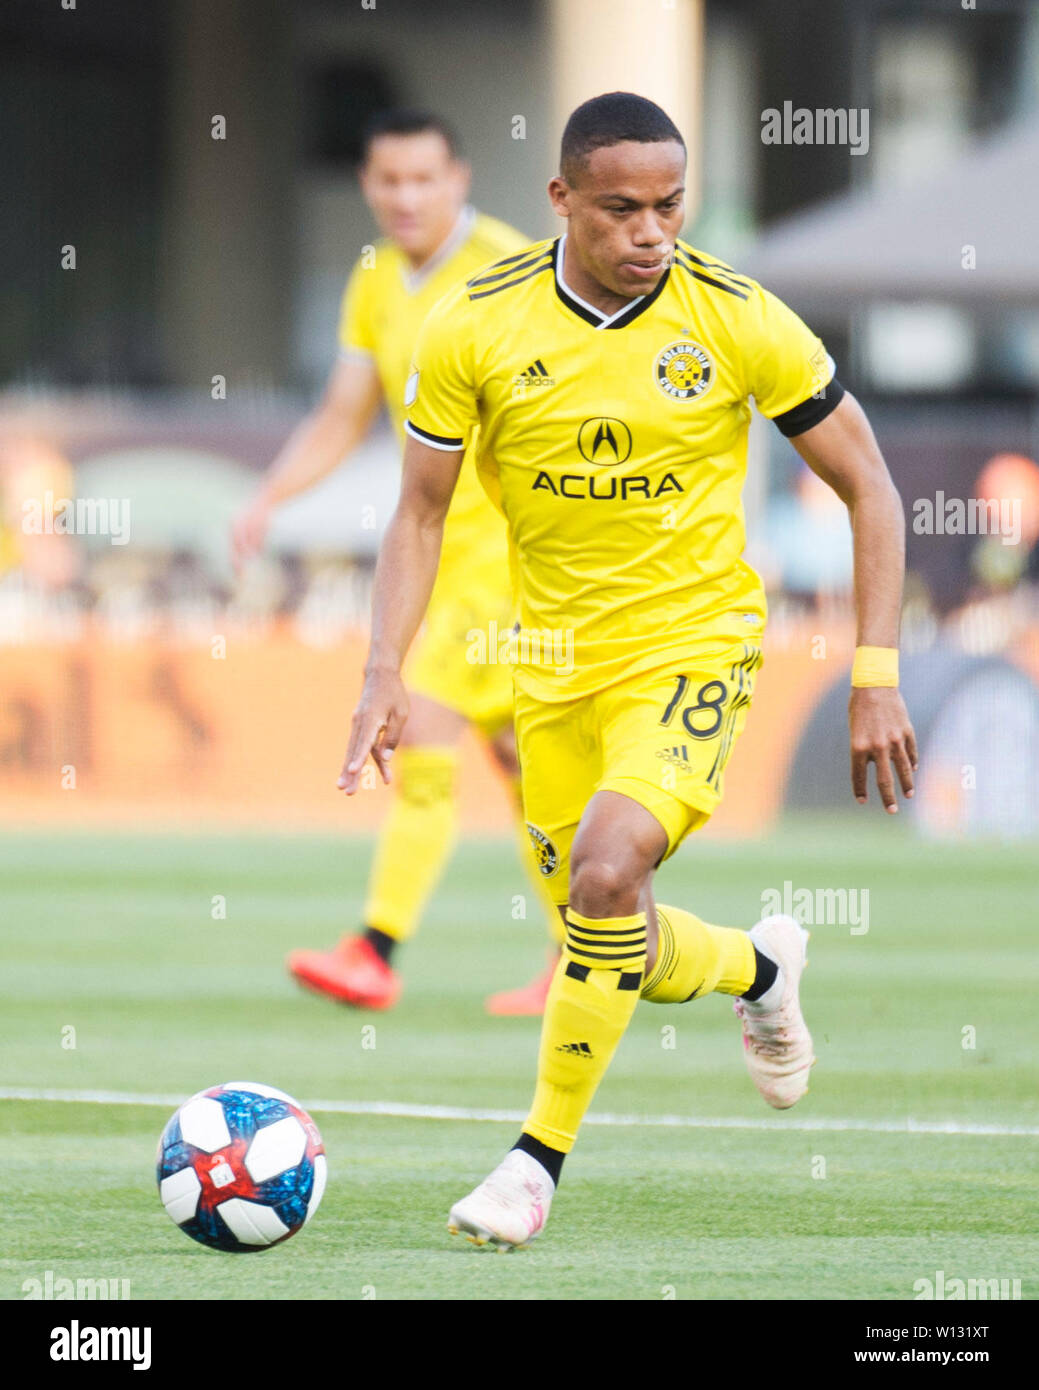 June 29, 2019:Columbus Crew SC forward Robinho (18) dribbles the ball down the pitch against Orlando City SC in their game in Columbus, Ohio, USA. Brent Clark/Alamy Live News - Stock Image